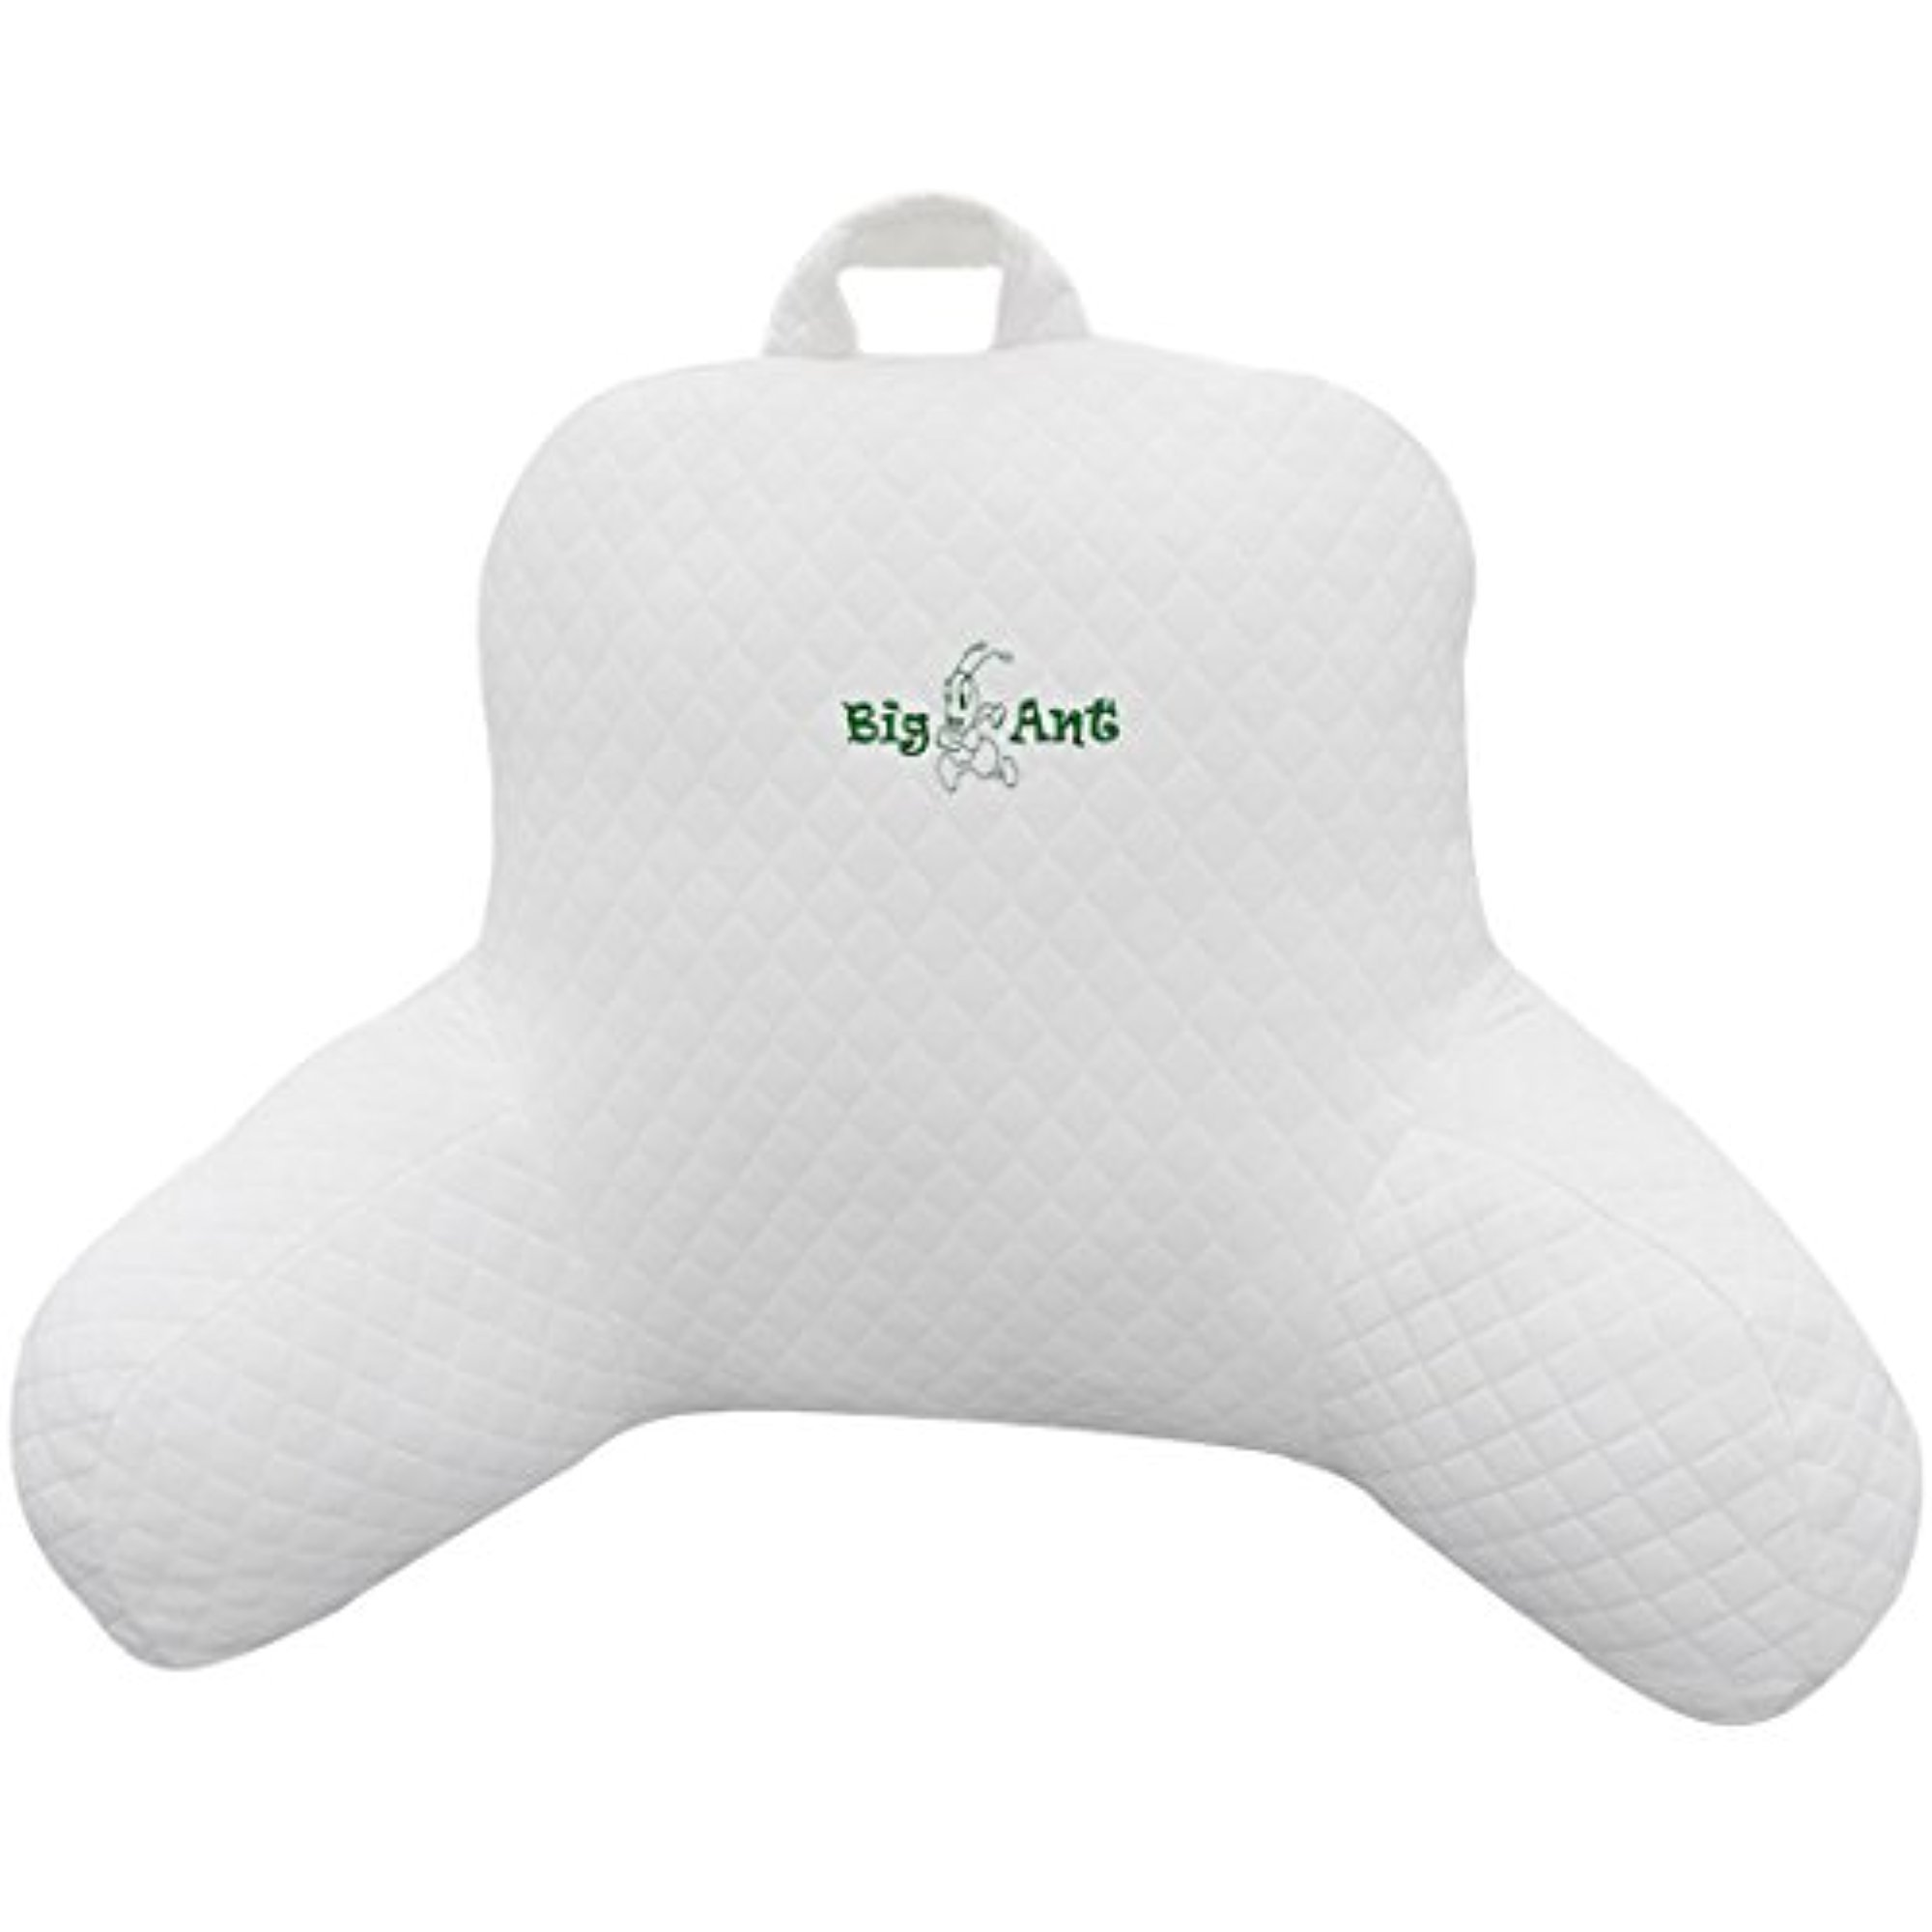 Black Friday Backrest Pillow with Arms-Comfort PP Cotton Orthopedic Support Chair Pillow- for Lower & Upper... by Big Ant